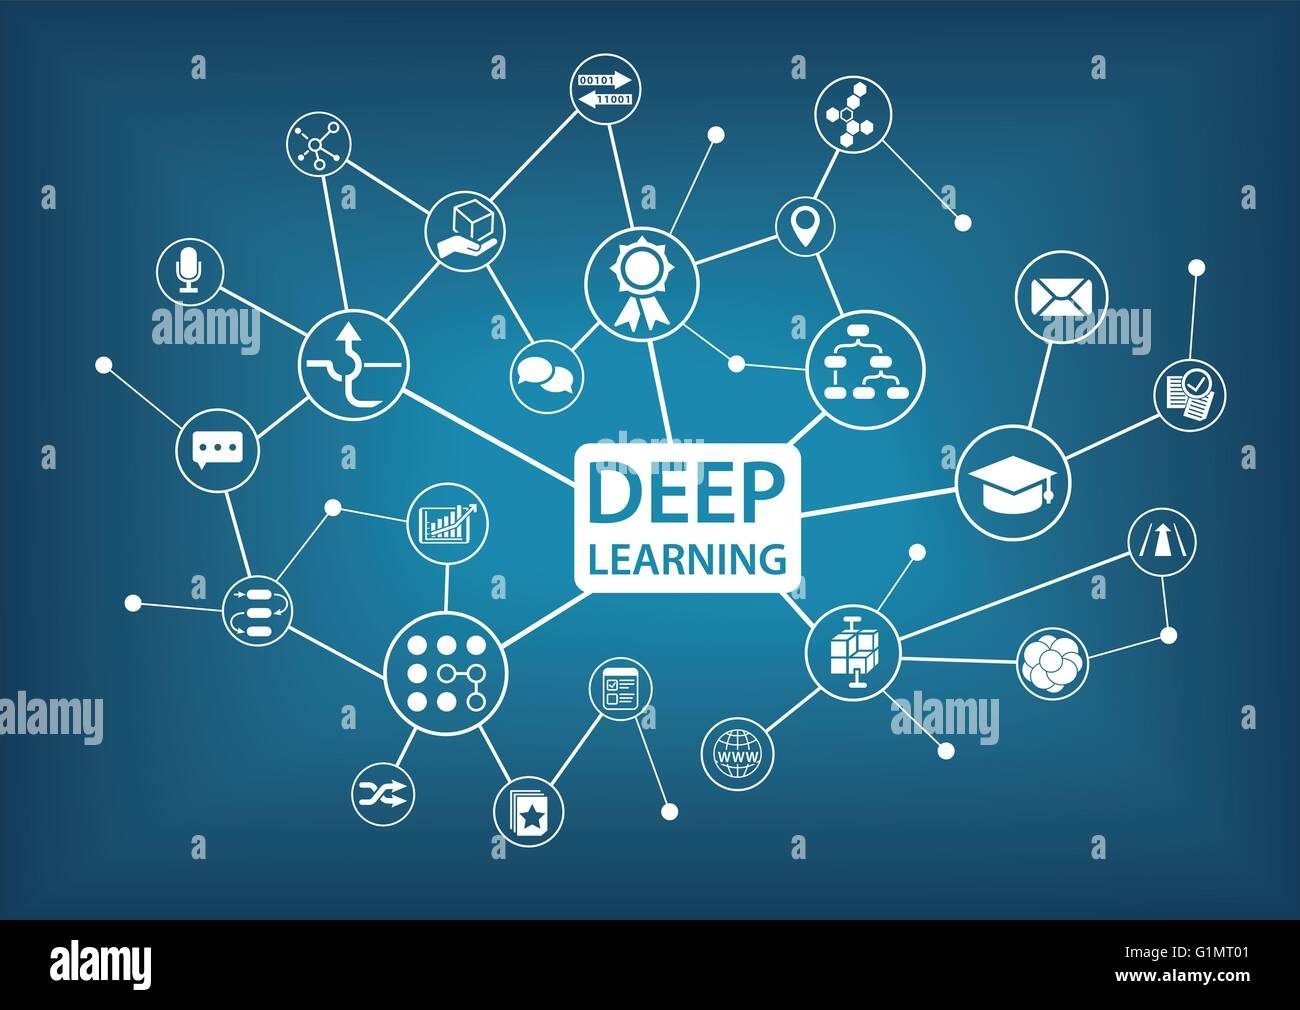 Deep learning infographic as vector illustration - Stock Image